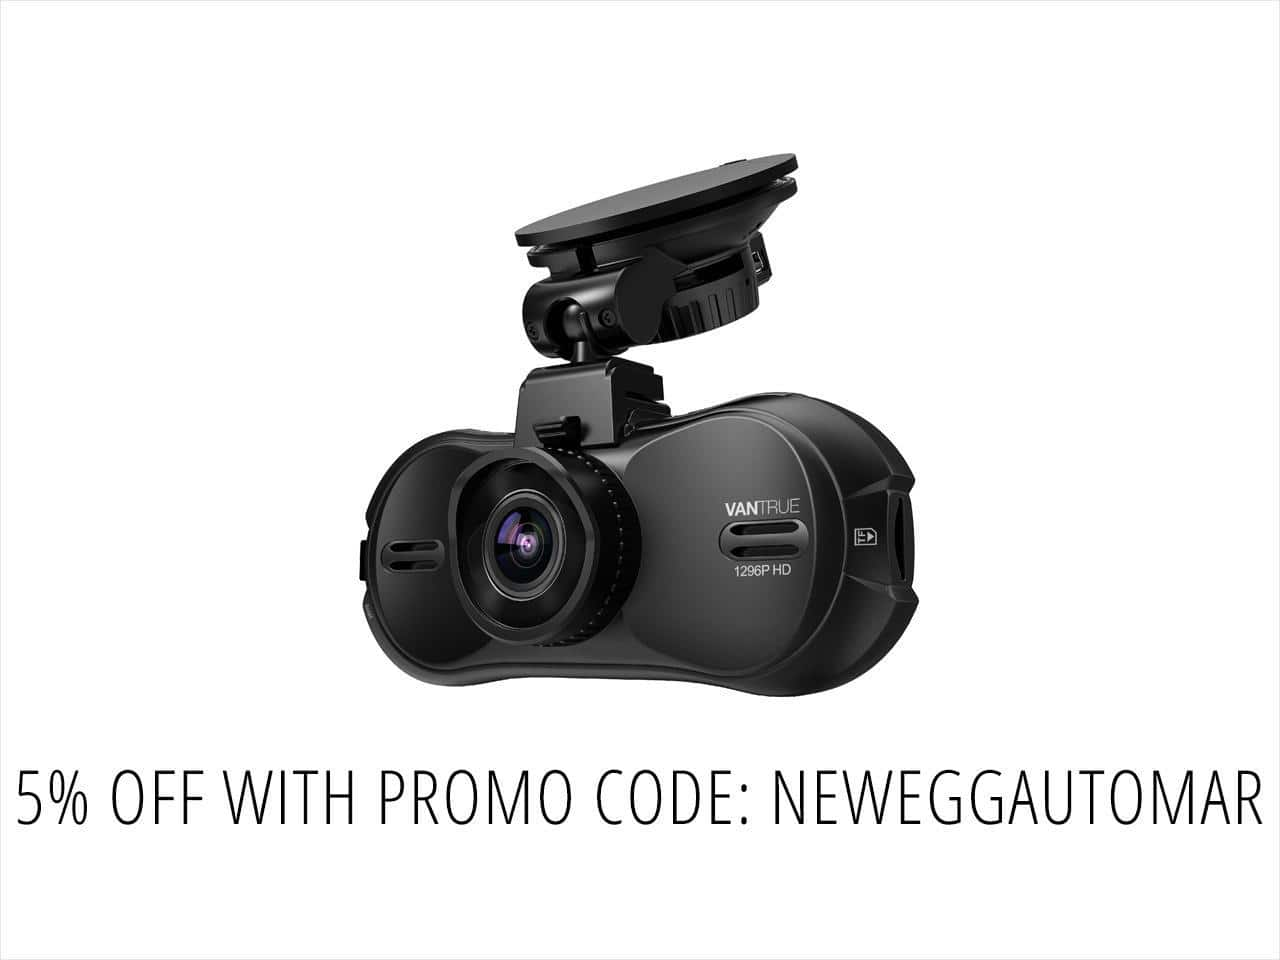 urlhasbeenblocked R3 Super HD 1296P 4-Lane Wide-Angle View Car Dash Cam $71AC @NF X3/$104AC